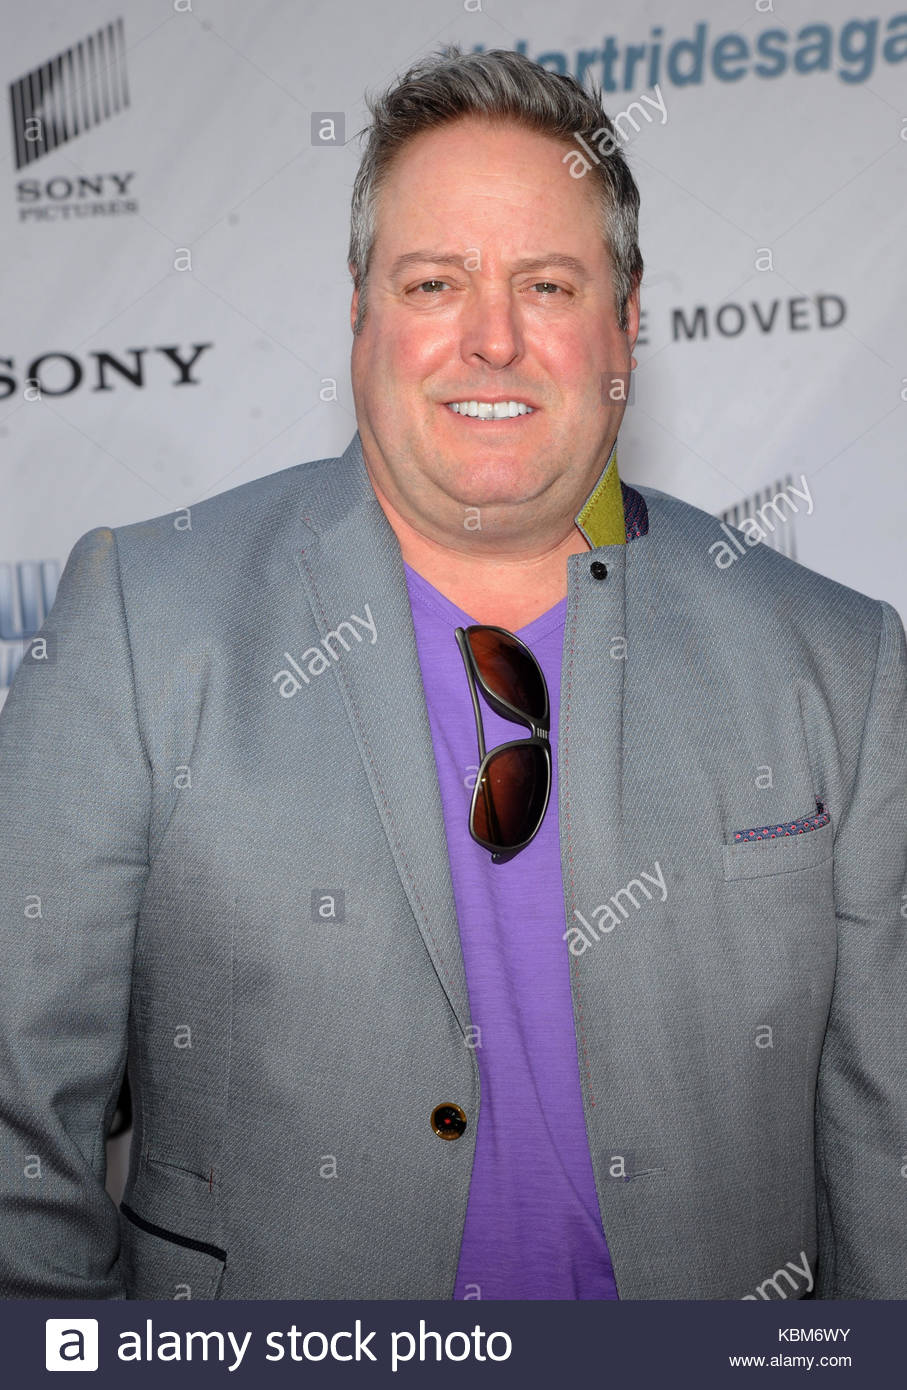 Gary Valentine. Kevin James Seen Along With His Fellow Co Stars Attend The  World Premiere Of U0027Paul Blart: Mall Cop 2u0027 At The AMC Loews Lincoln Square  ...